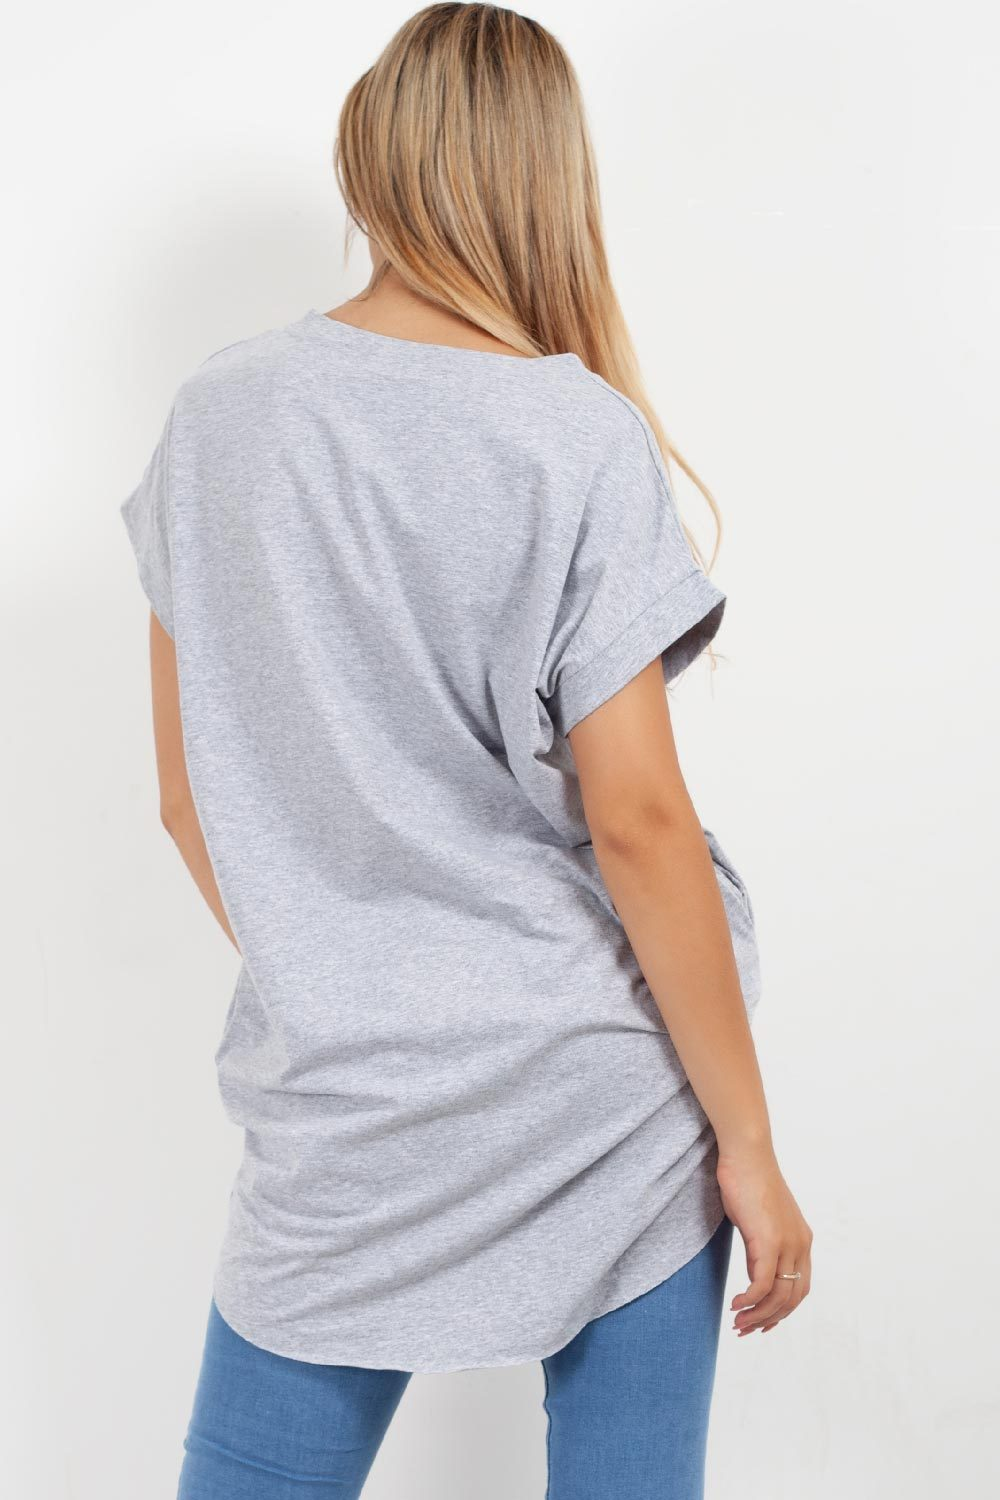 grey oversized tee shirt grey styledup fashion